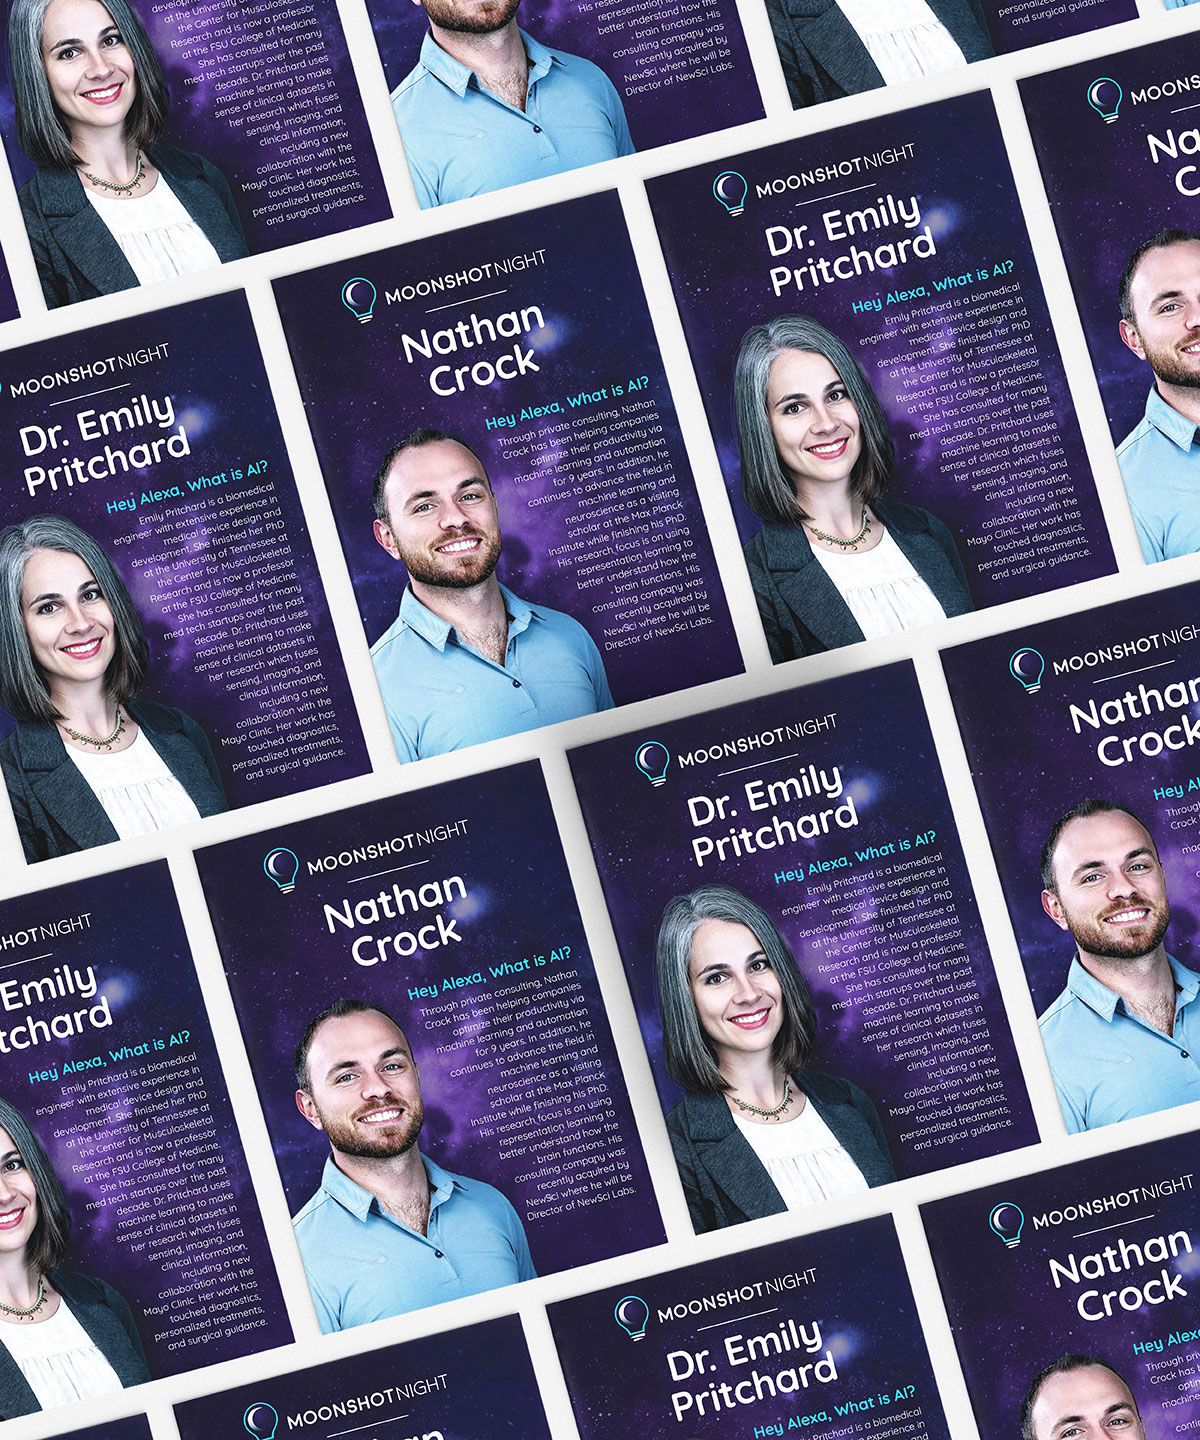 Series of printed Moonshot Night handouts with portraits of various speakers on them.